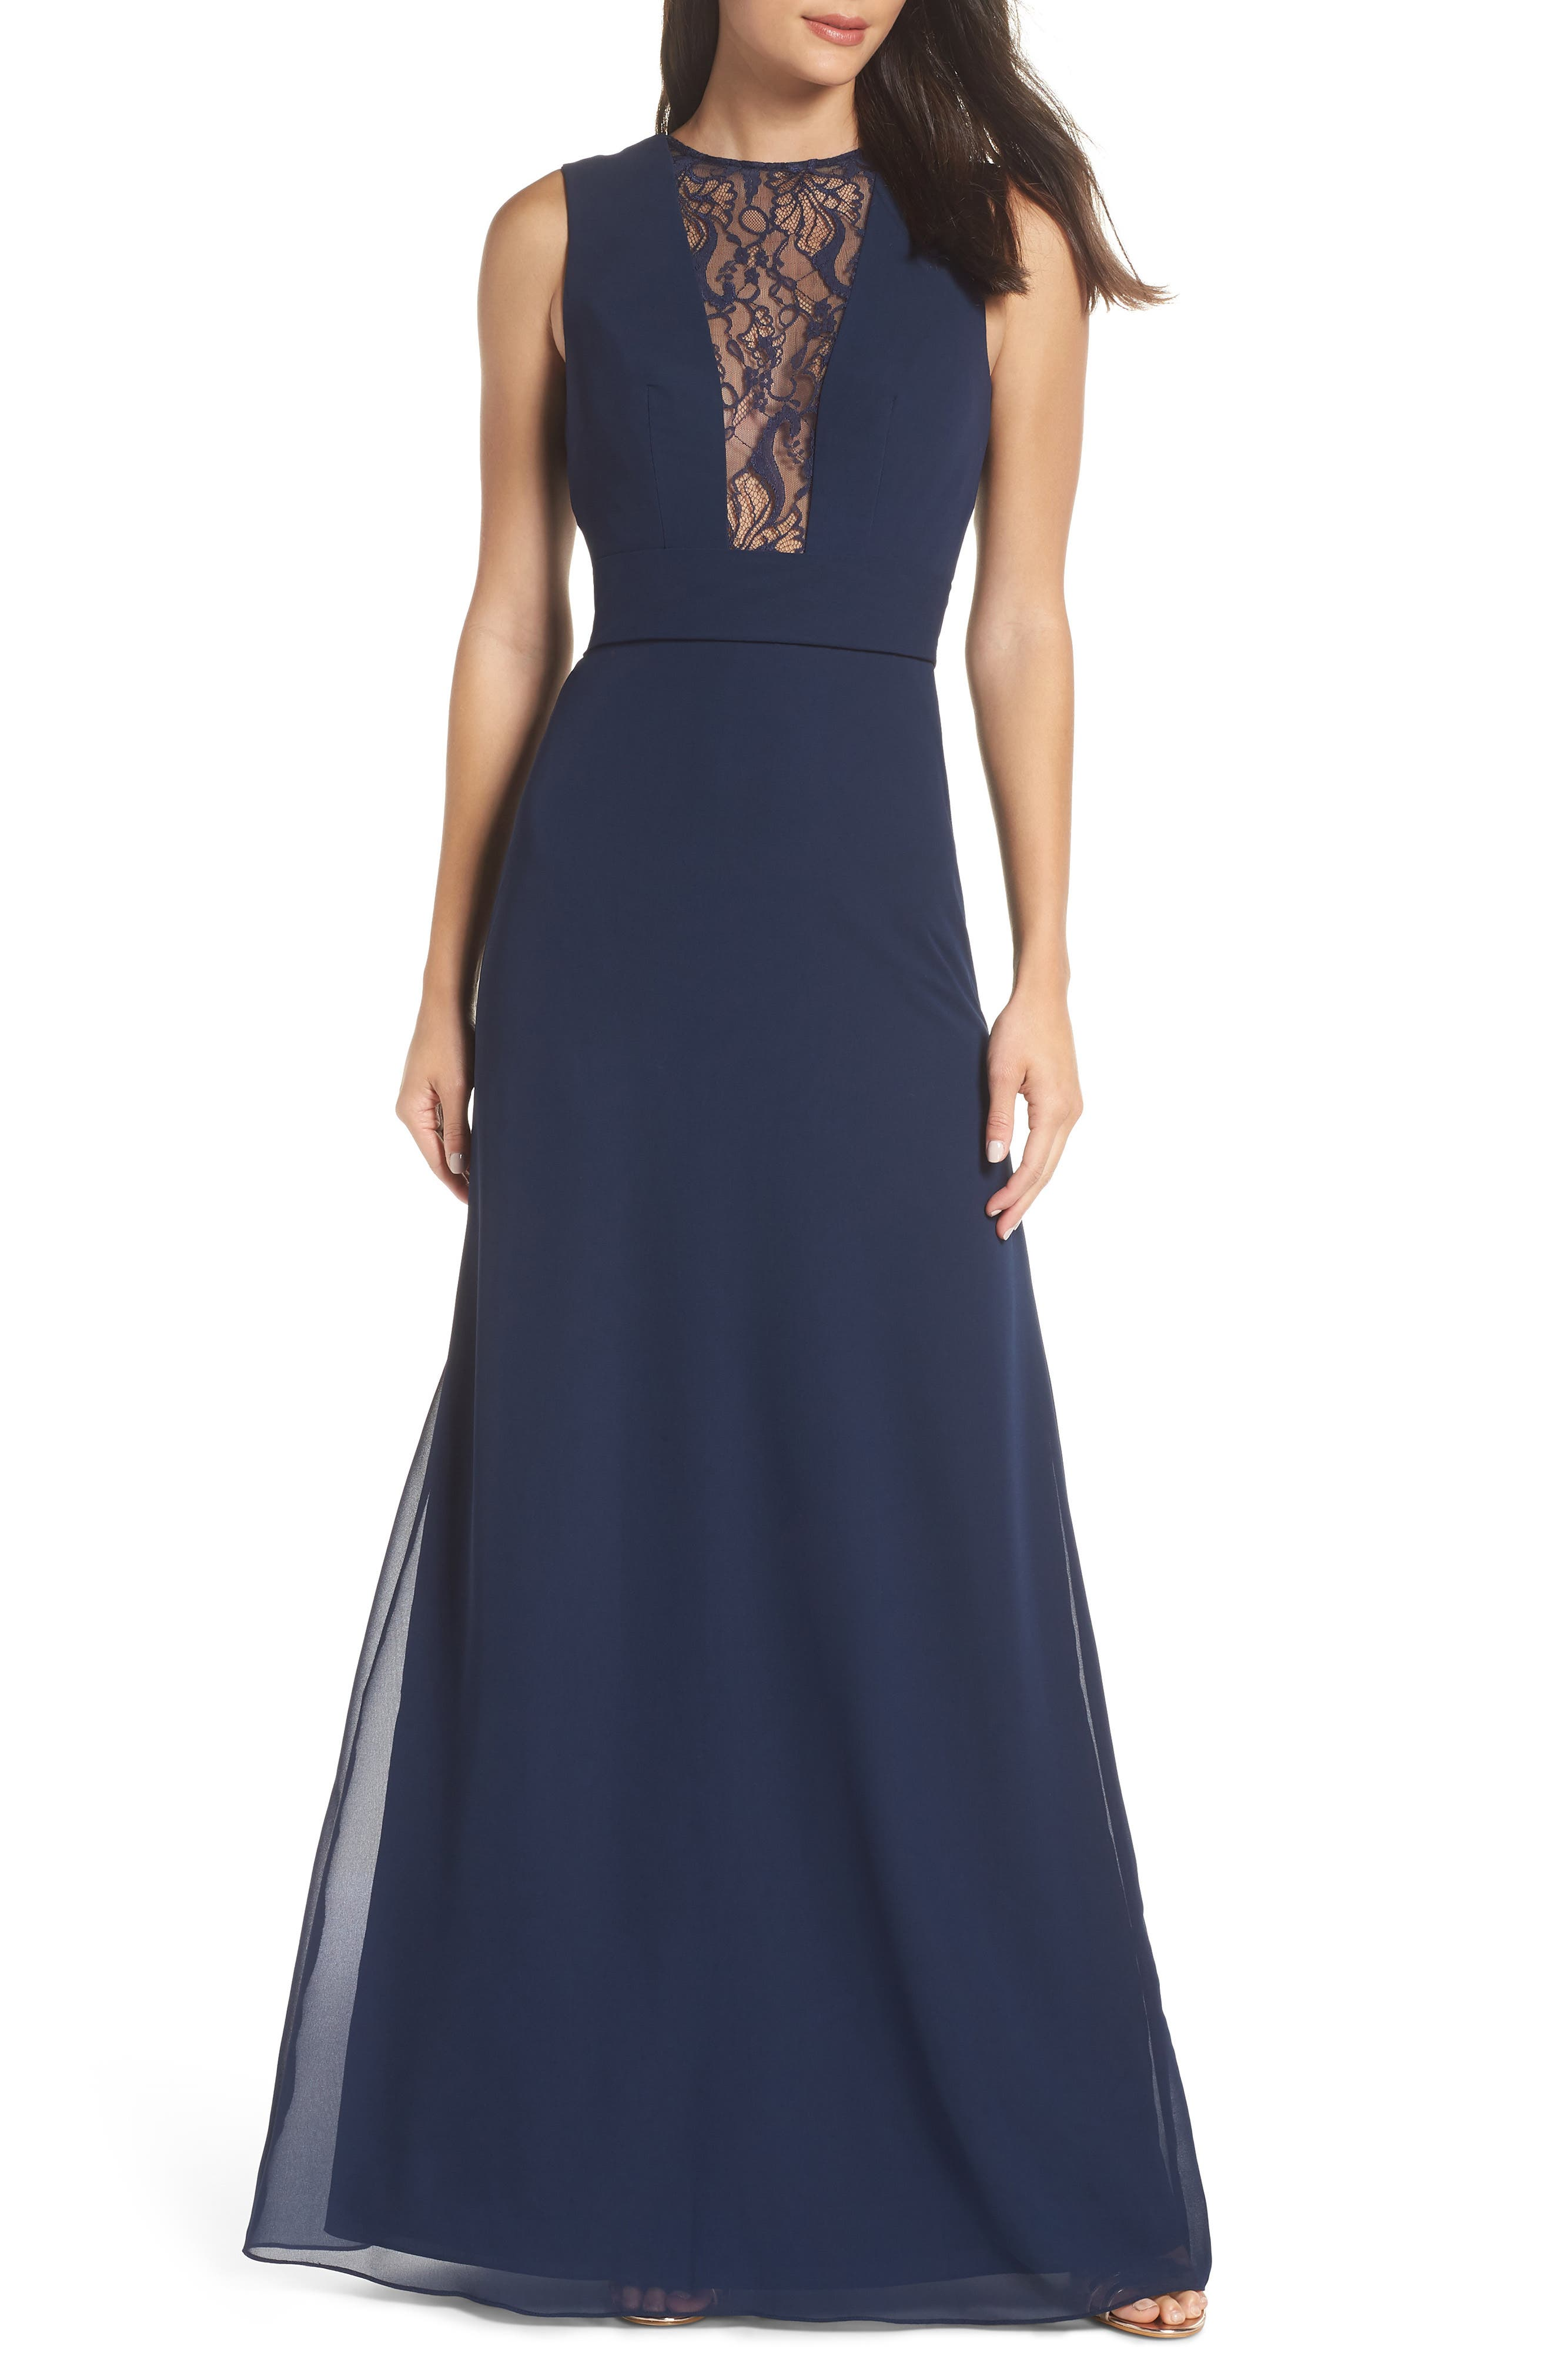 HAYLEY PAIGE OCCASIONS Lace Inset Chiffon Gown, Main, color, NAVY